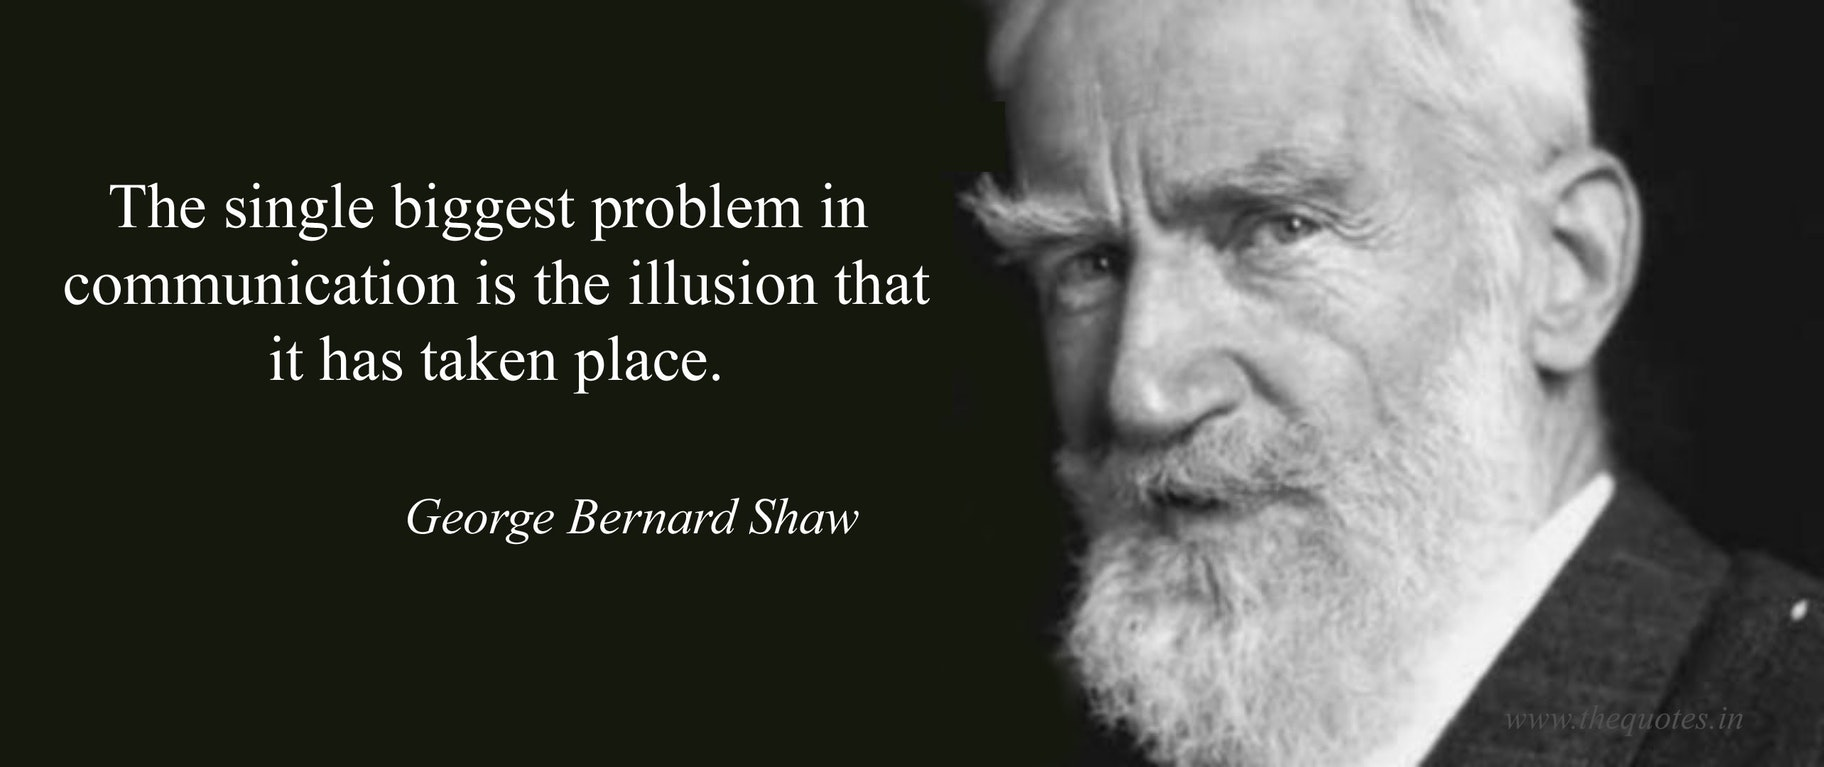 George Bernard Shaw quote communication